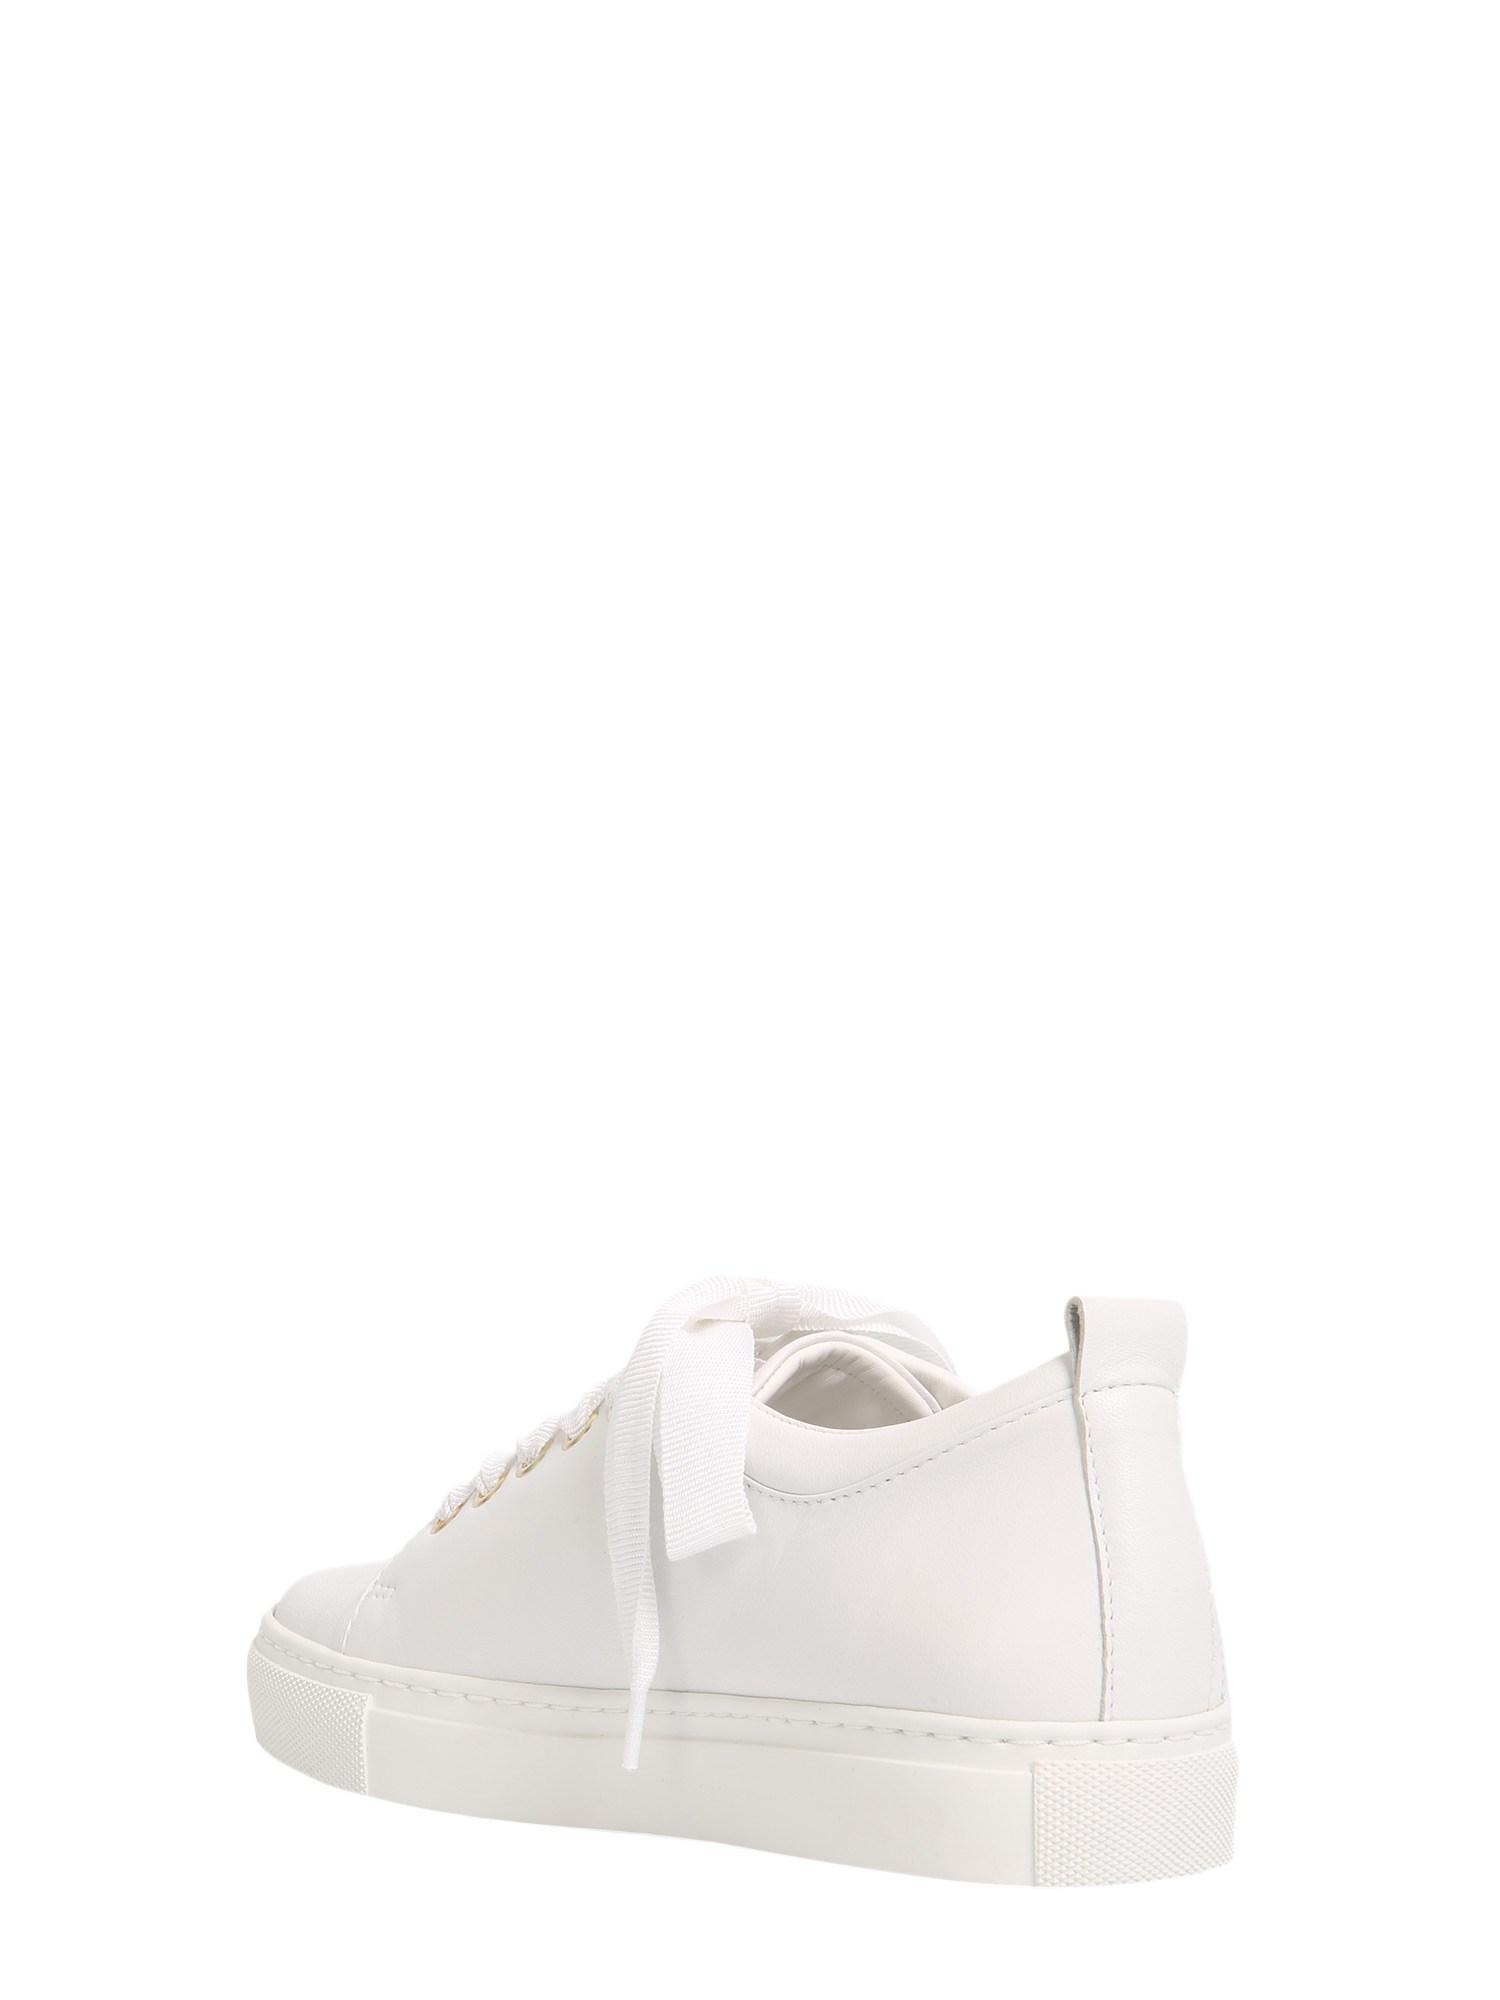 Lanvin Logo Perforated Lace-up Sneakers in White